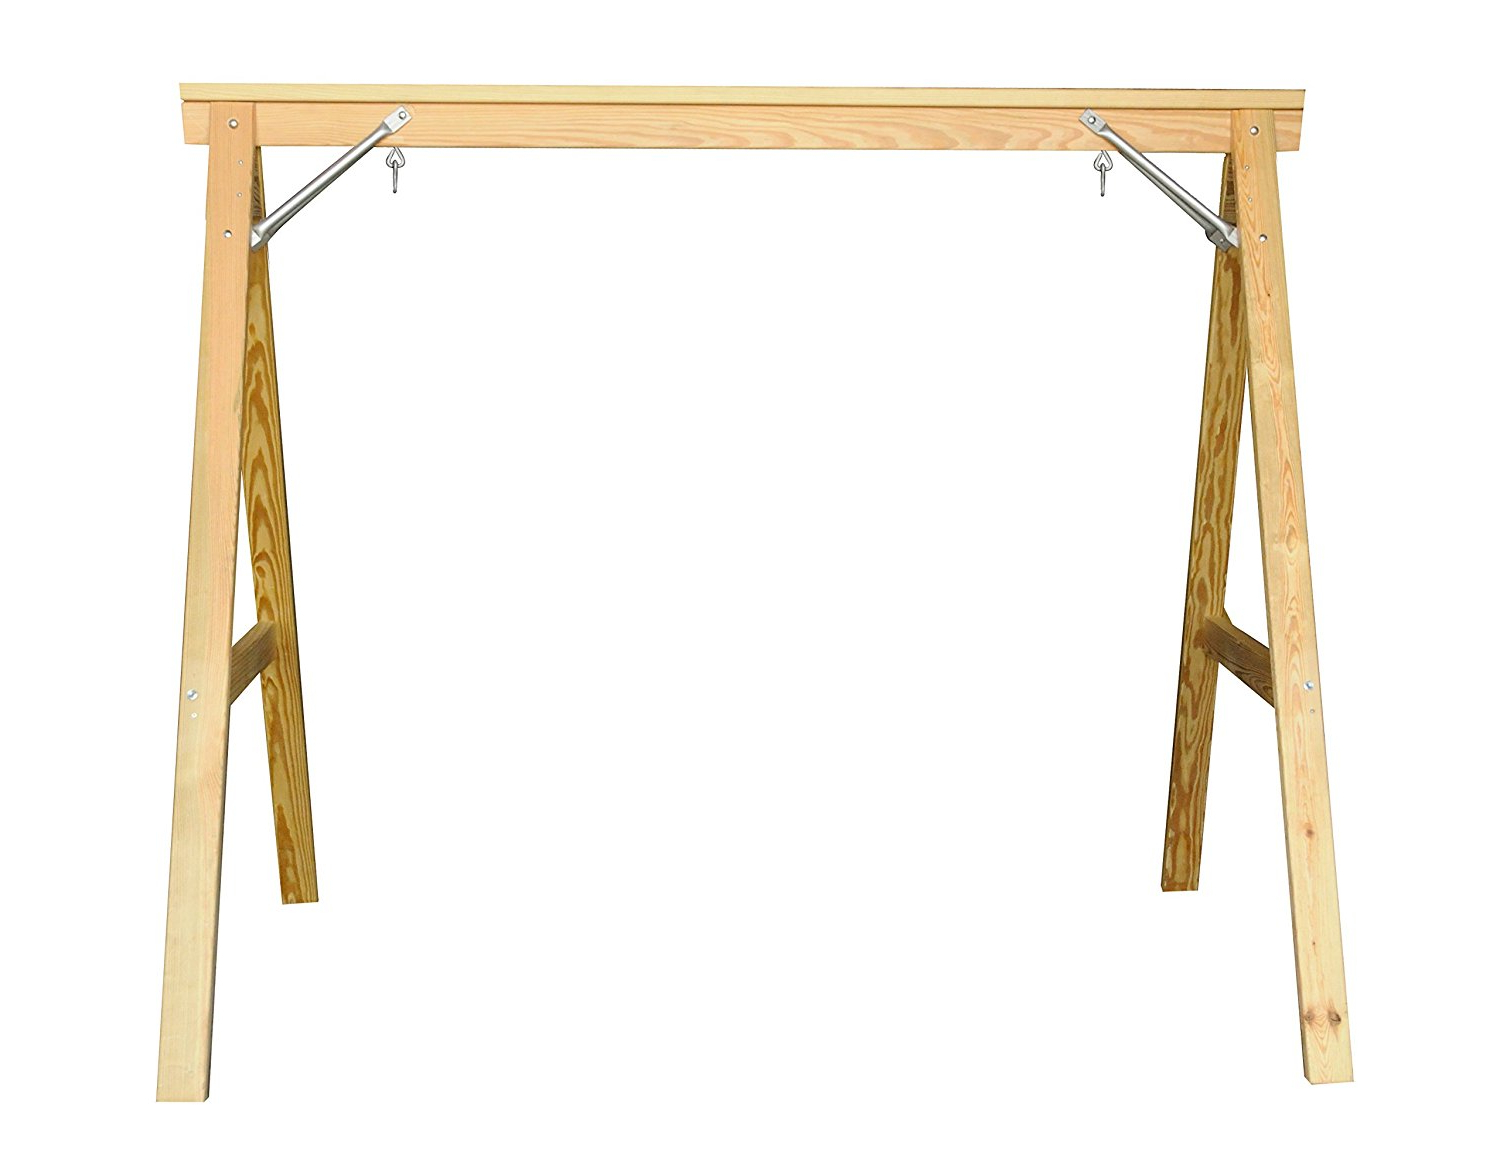 Scandinavian Style Wood Porch Swing Stand For 4ft Swings For Well Known Hardwood Hanging Porch Swings With Stand (View 23 of 25)